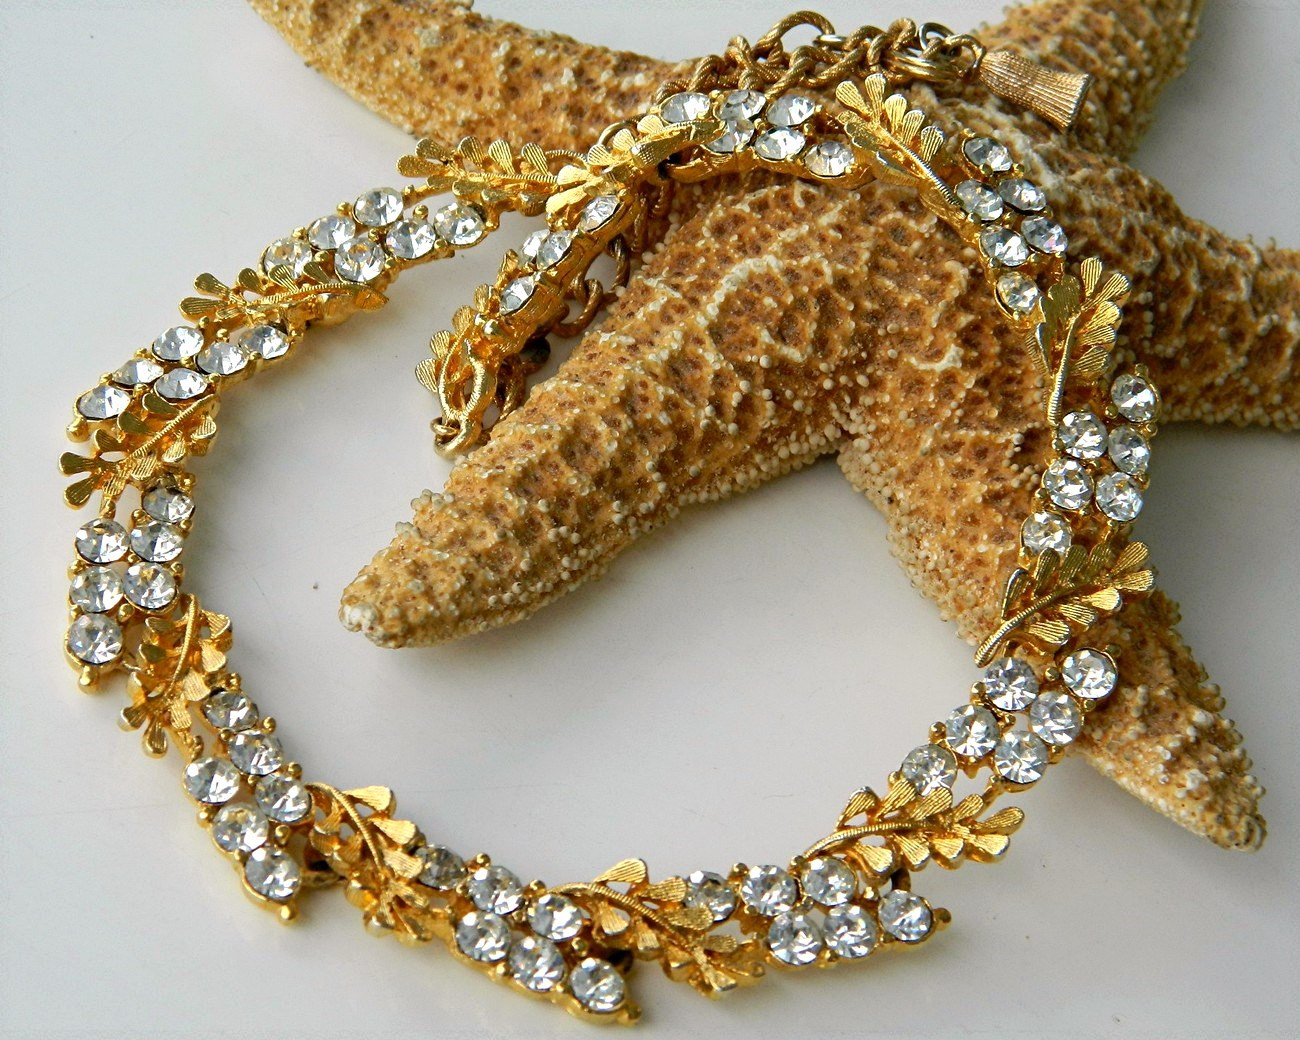 Vintage BSK Necklace Rhinestone Leaf Leaves Linked Choker